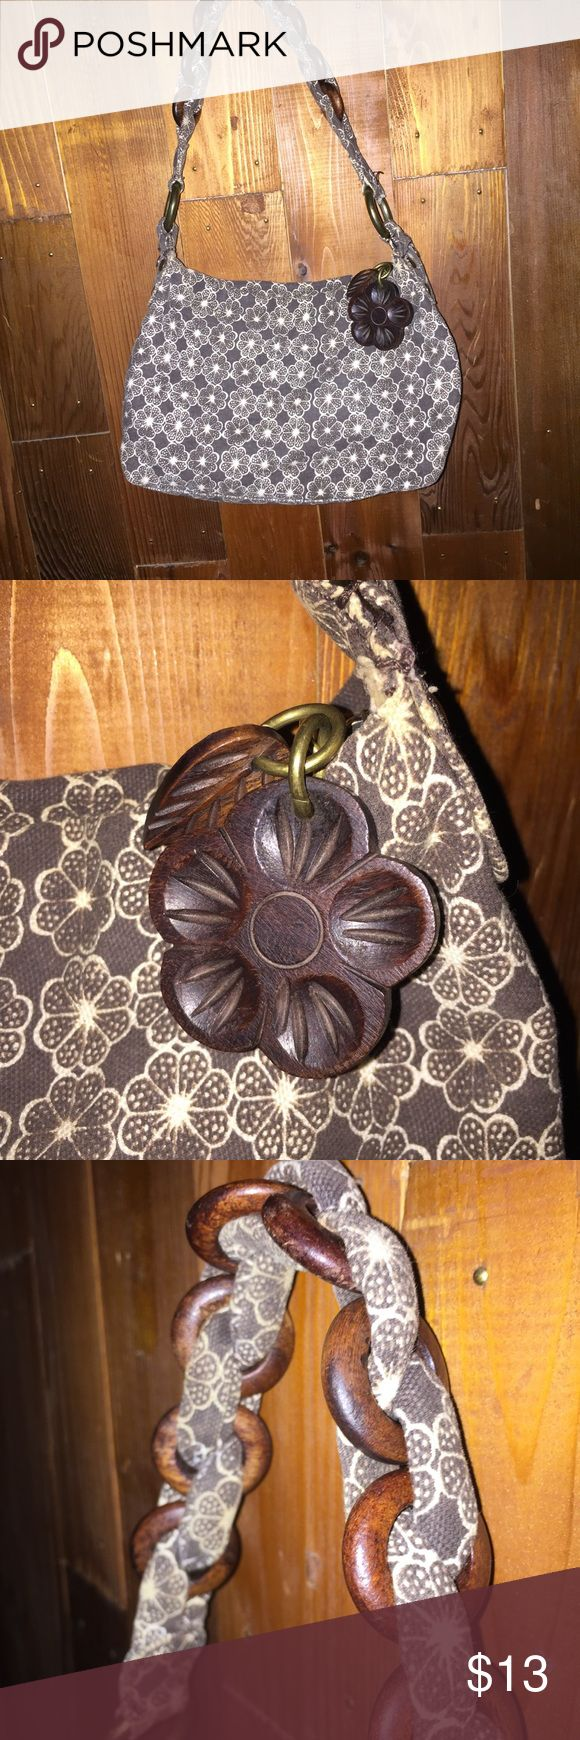 Gap handbag with wooden embellishments This stunning Gap handbag has a lovely wooden flower and a small leaf that matches the pattern on the fabric.  It has some scratches on the wooden rings in the handle and shows some wear on the inside. GAP Bags Hobos